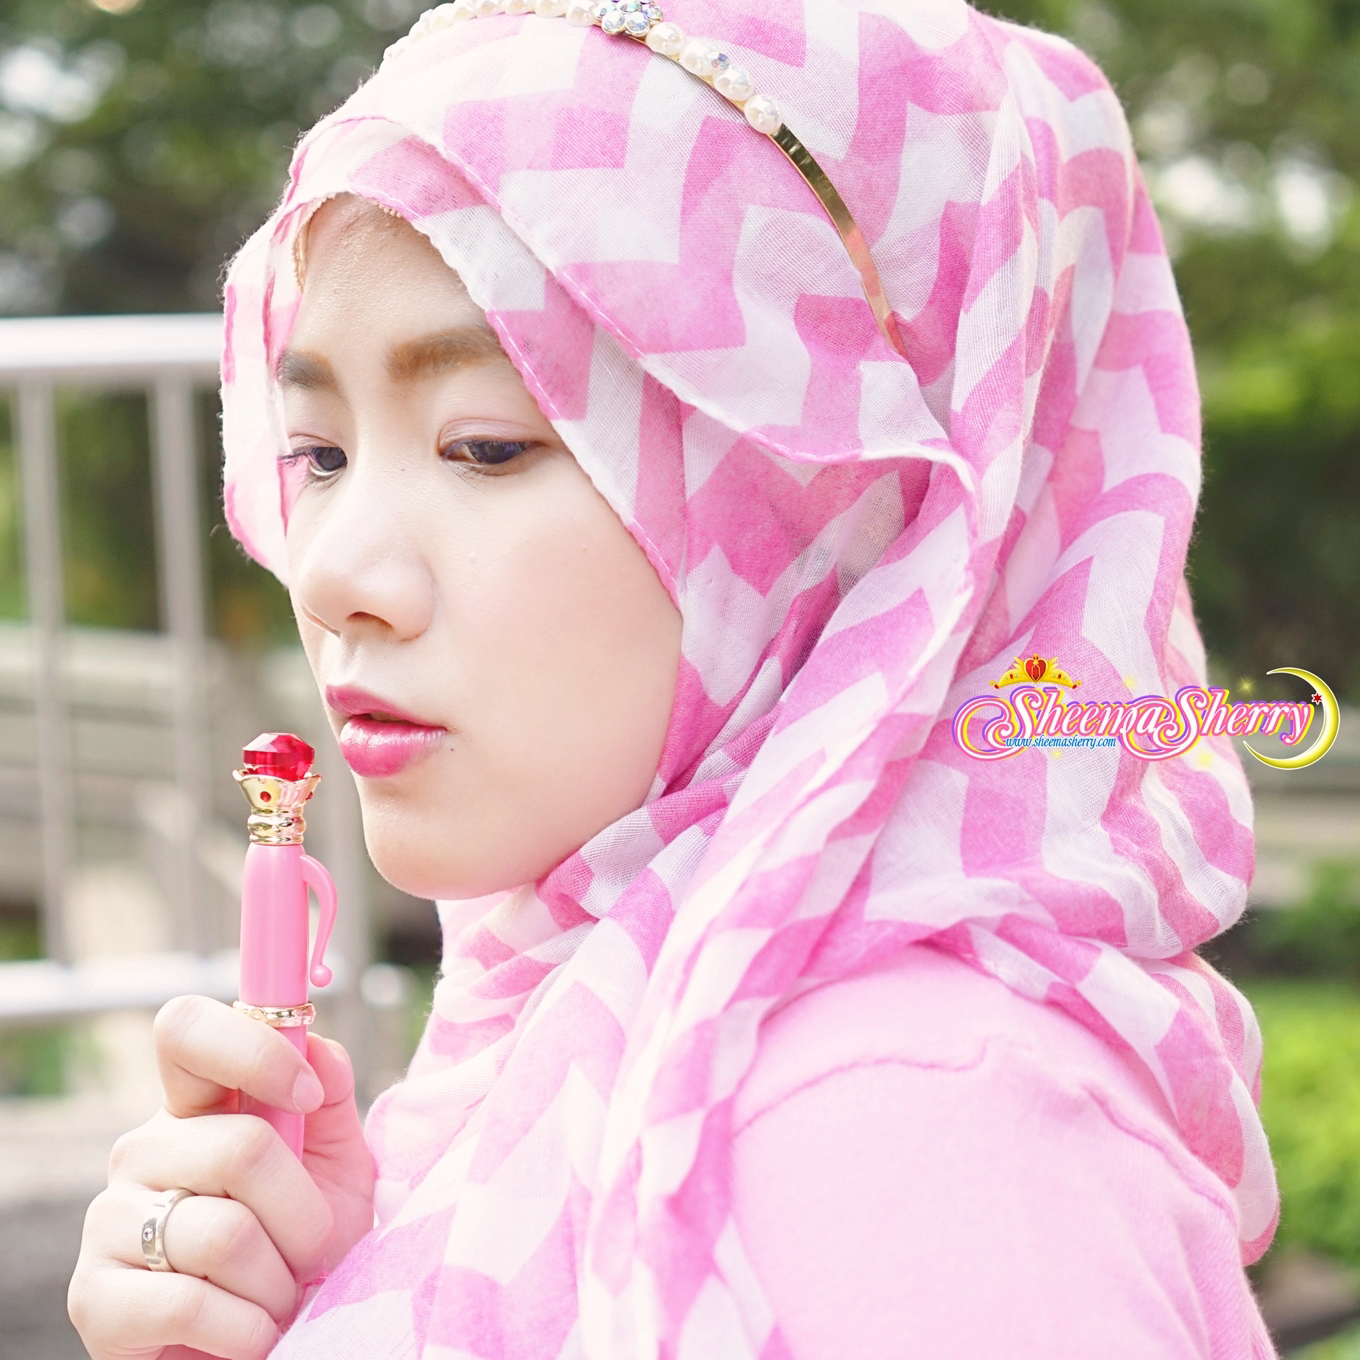 Sheemasherry Sheema Sherry Sailor Moon Miracle Romance Makeup Moisture Rouge Kawaii Hijabi Moonlight Memories Hijab Japan Muslimah Disguise Pen